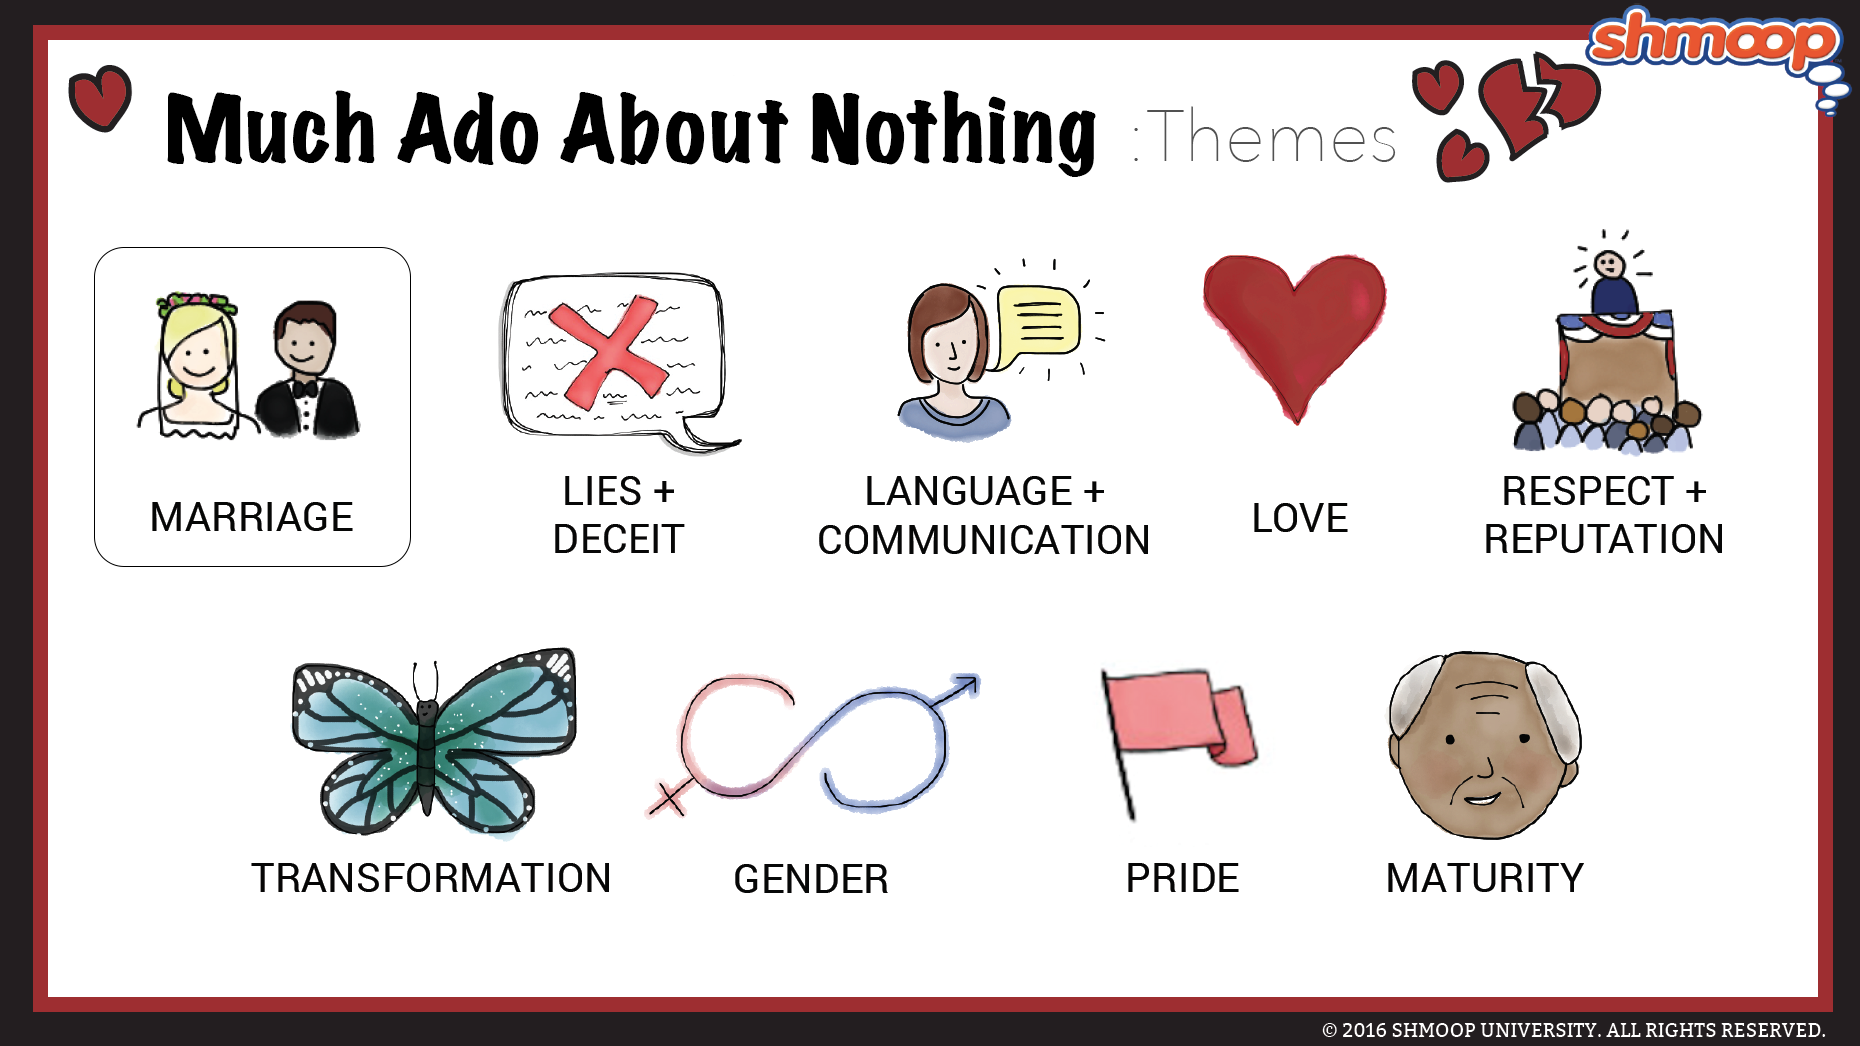 Much Ado About Nothing Marriage Shmoop